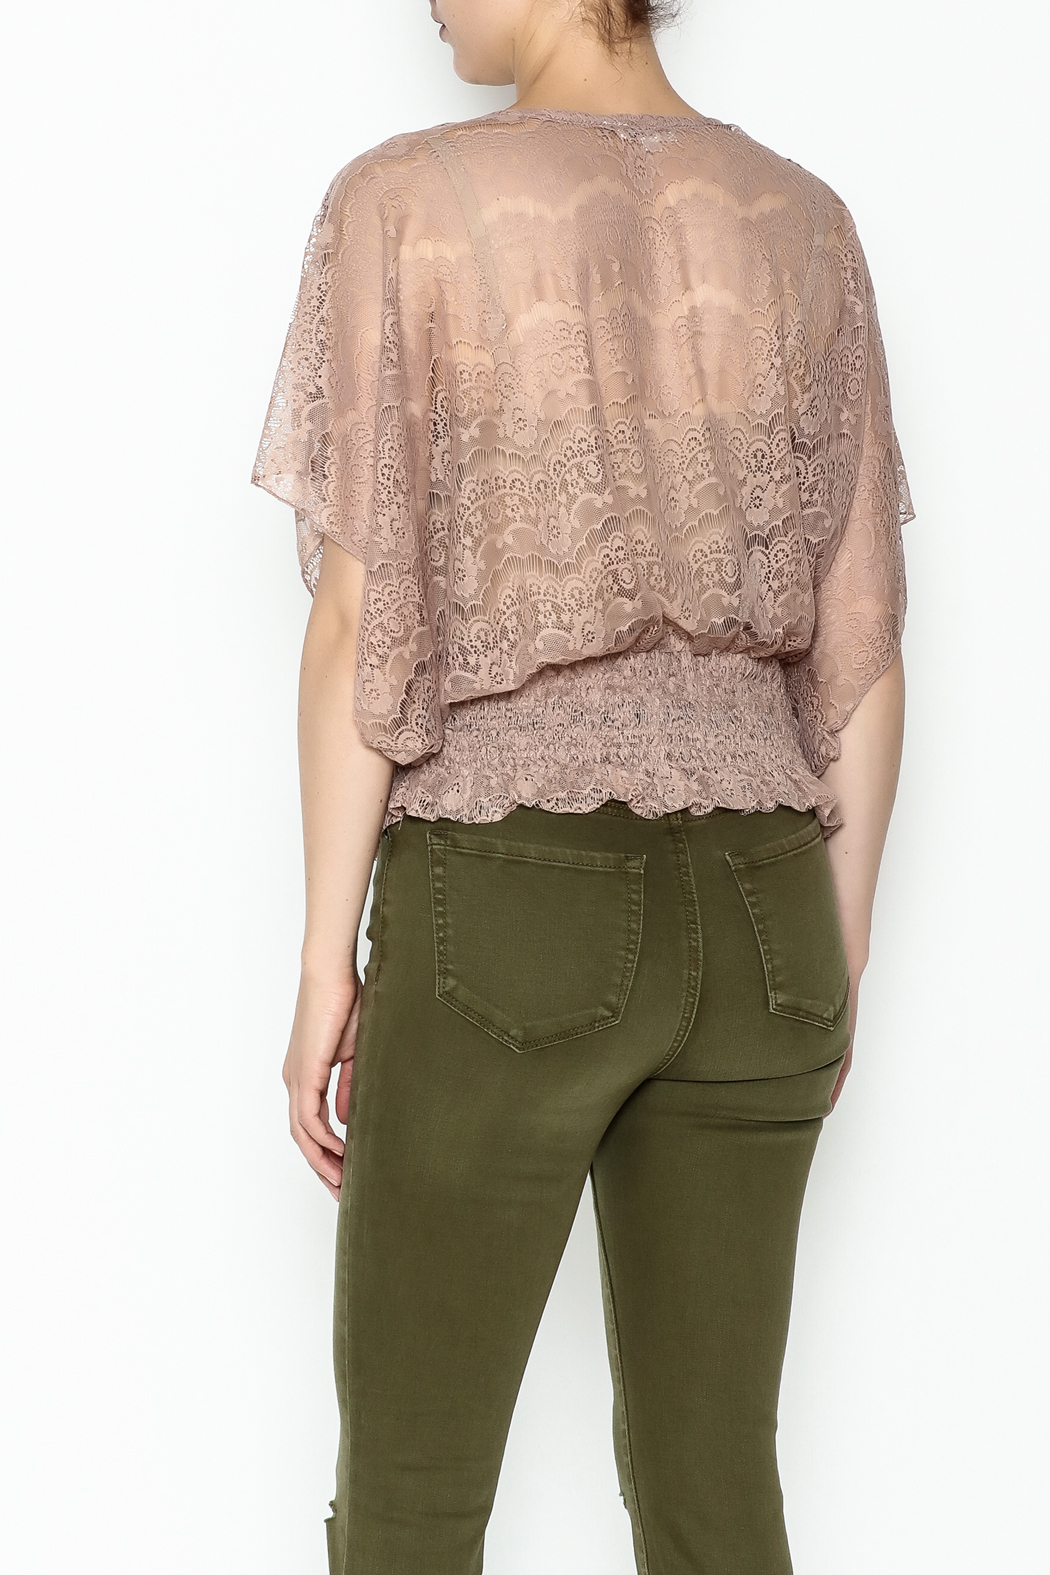 Cecico Lace Smocked Top - Back Cropped Image